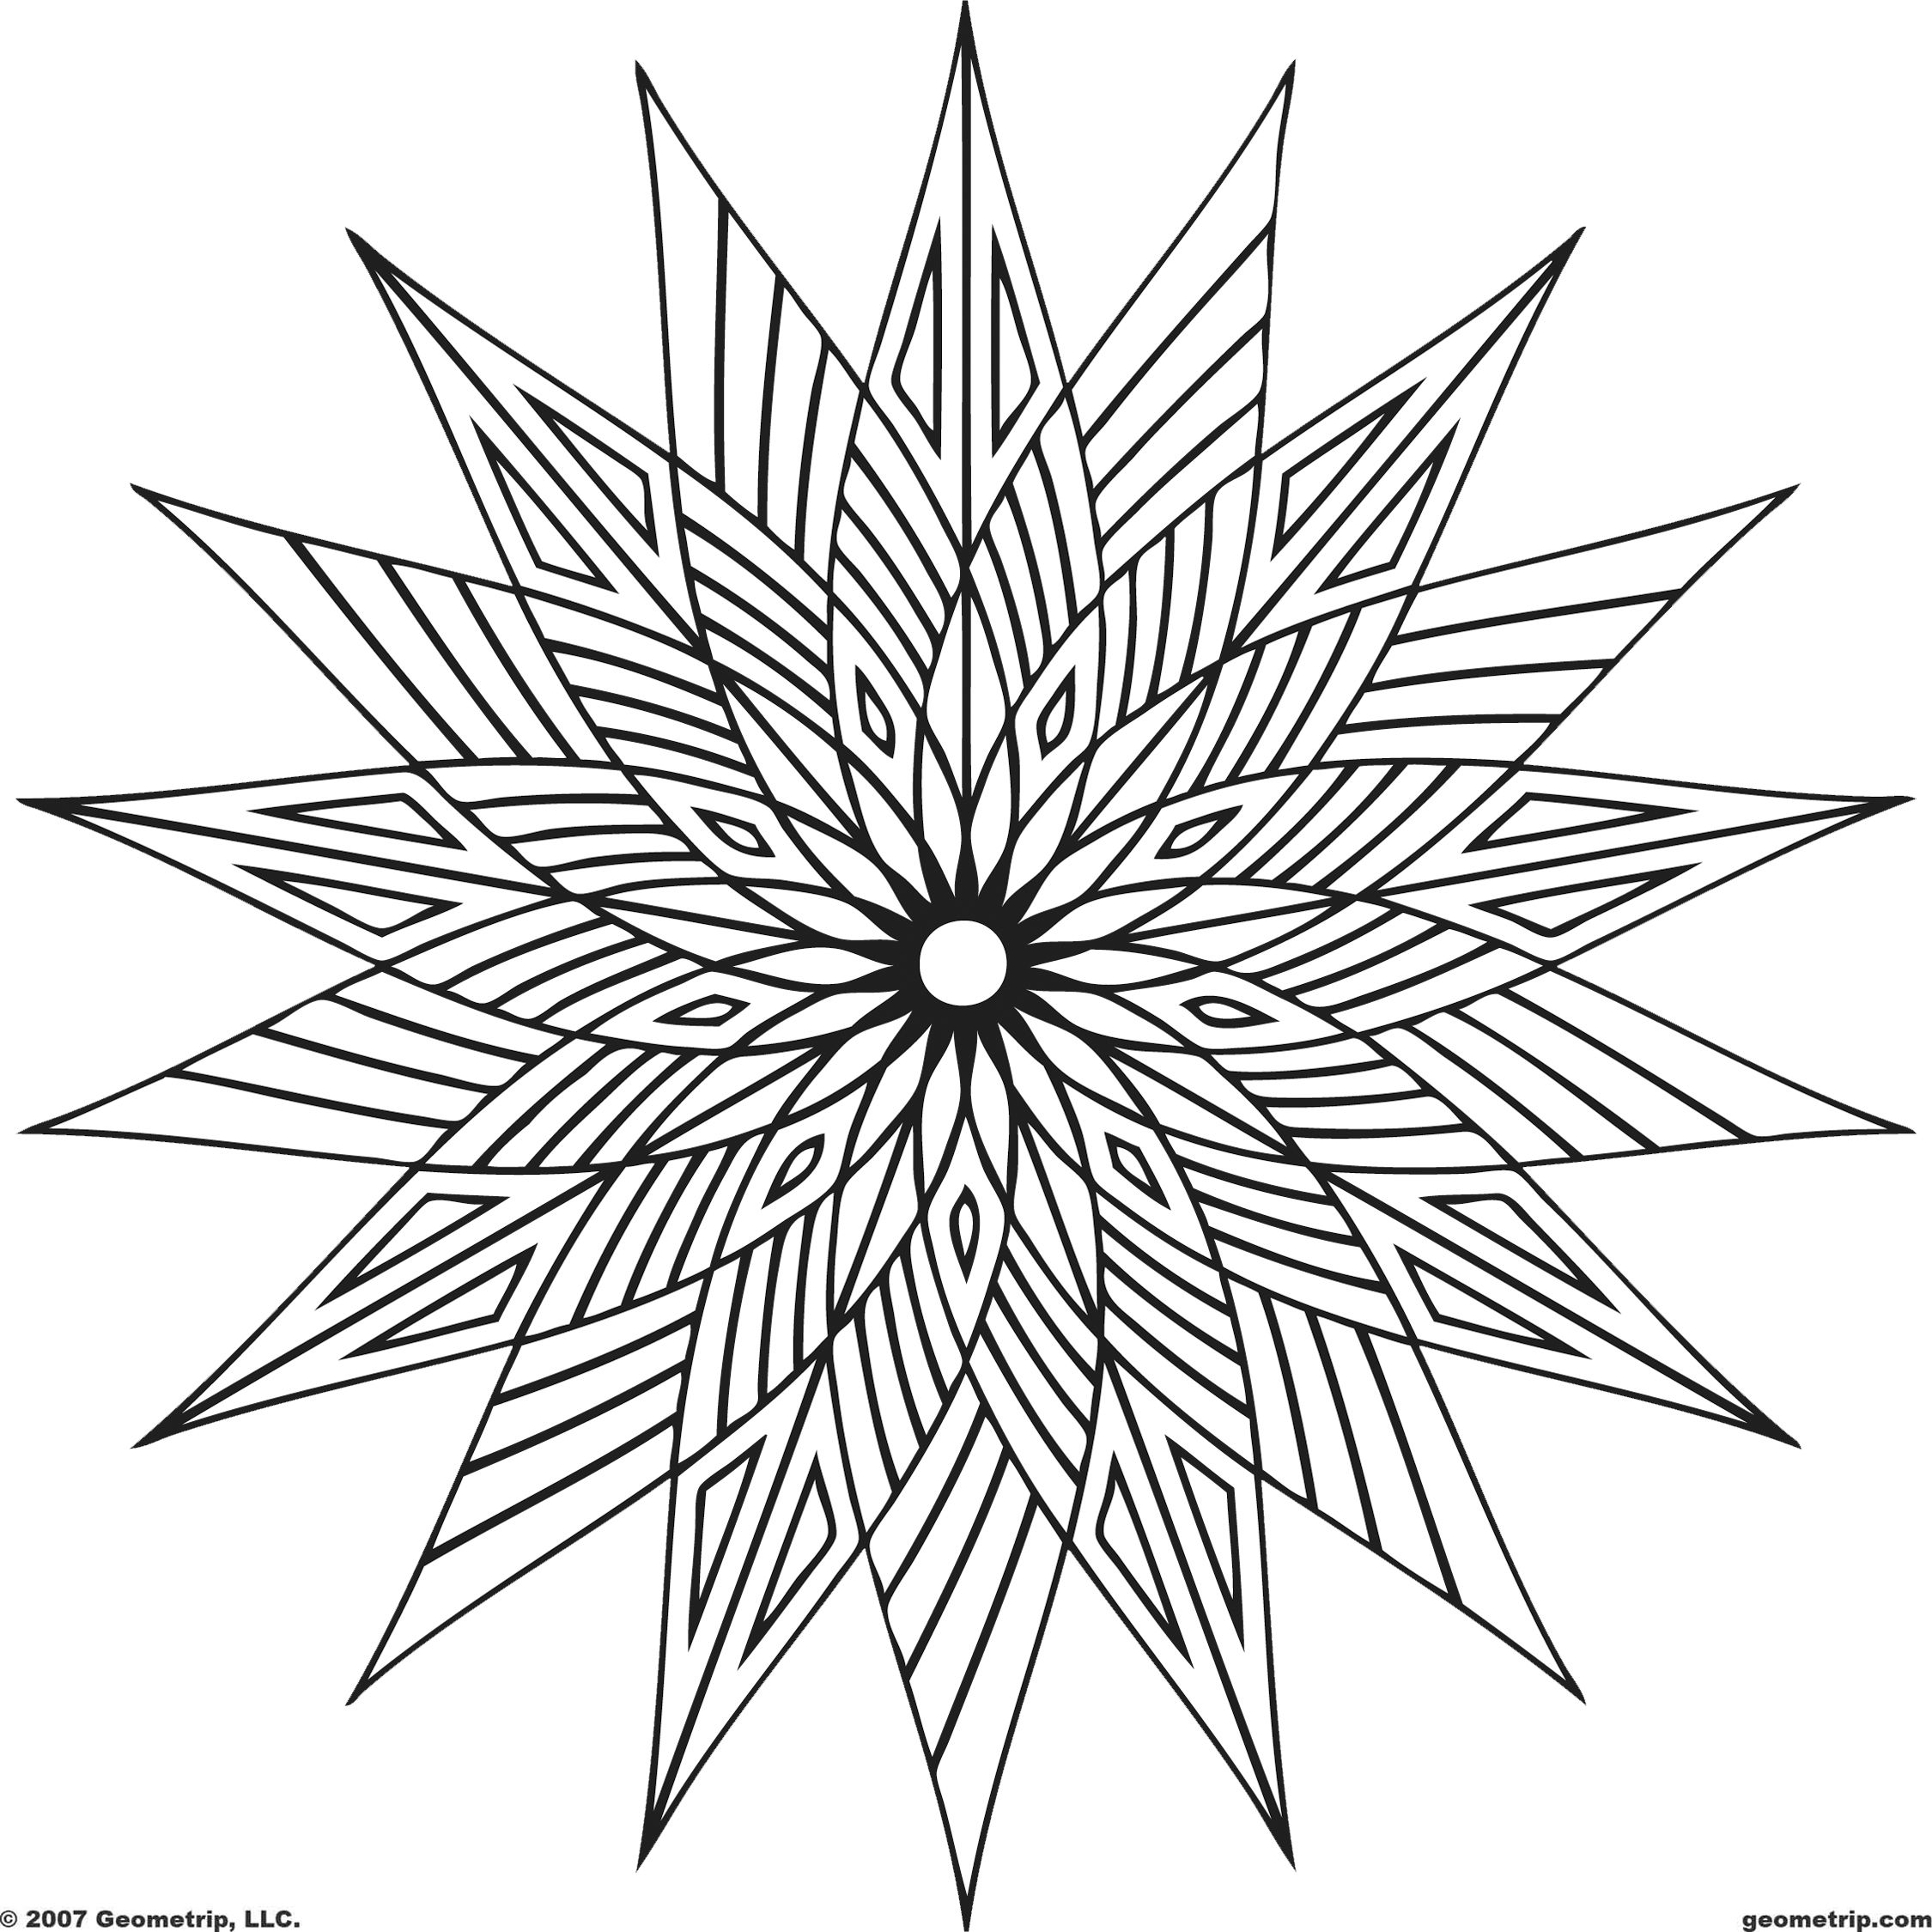 Coloring pages patterns - These Geometric Coloring Pages Pictures Are Online Coloring Pages That Can Be Colored With Color Gradients